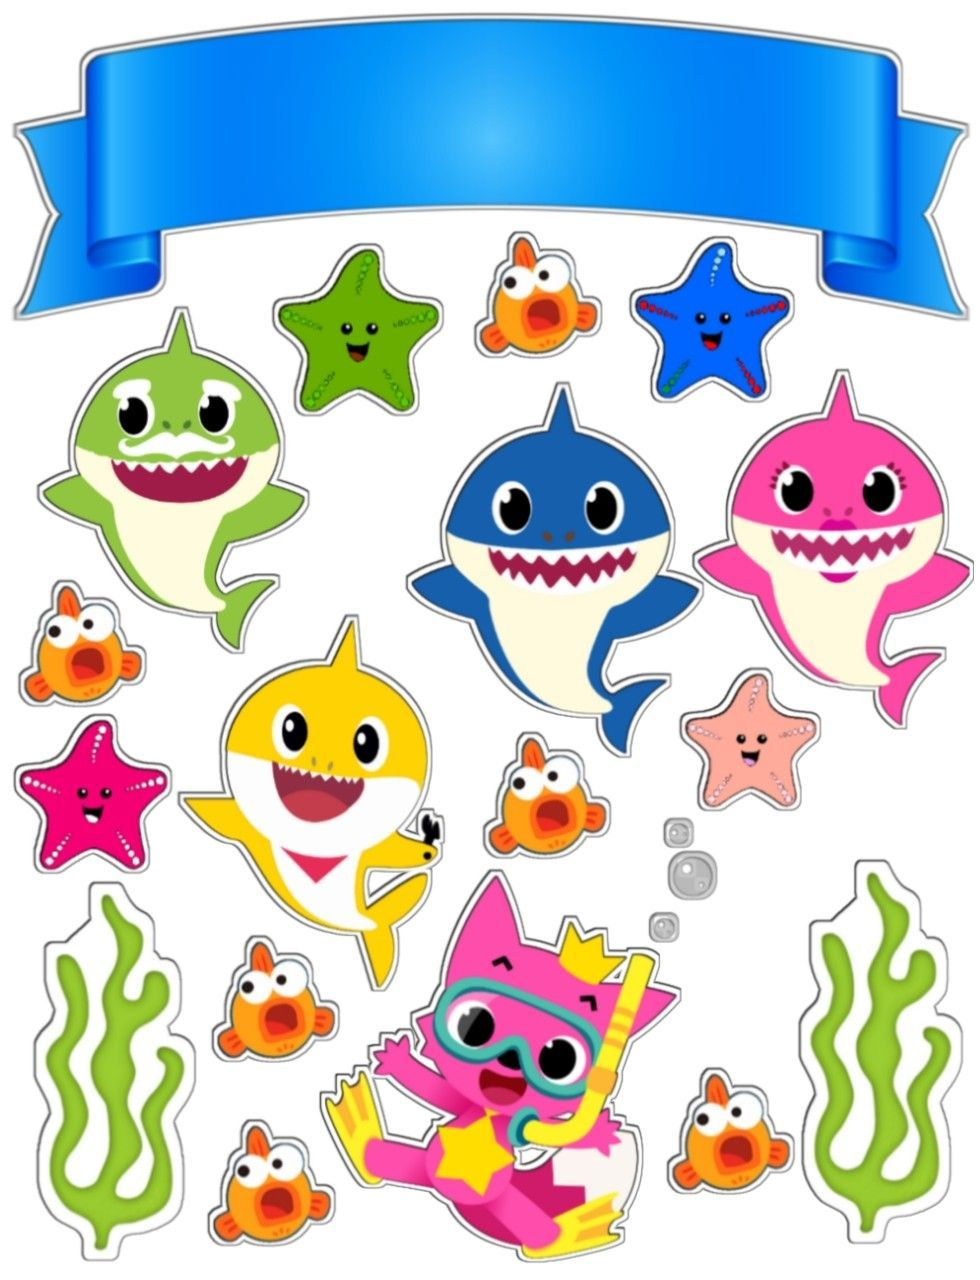 Baby Shark Family Stickers 100 Stickers per Pack